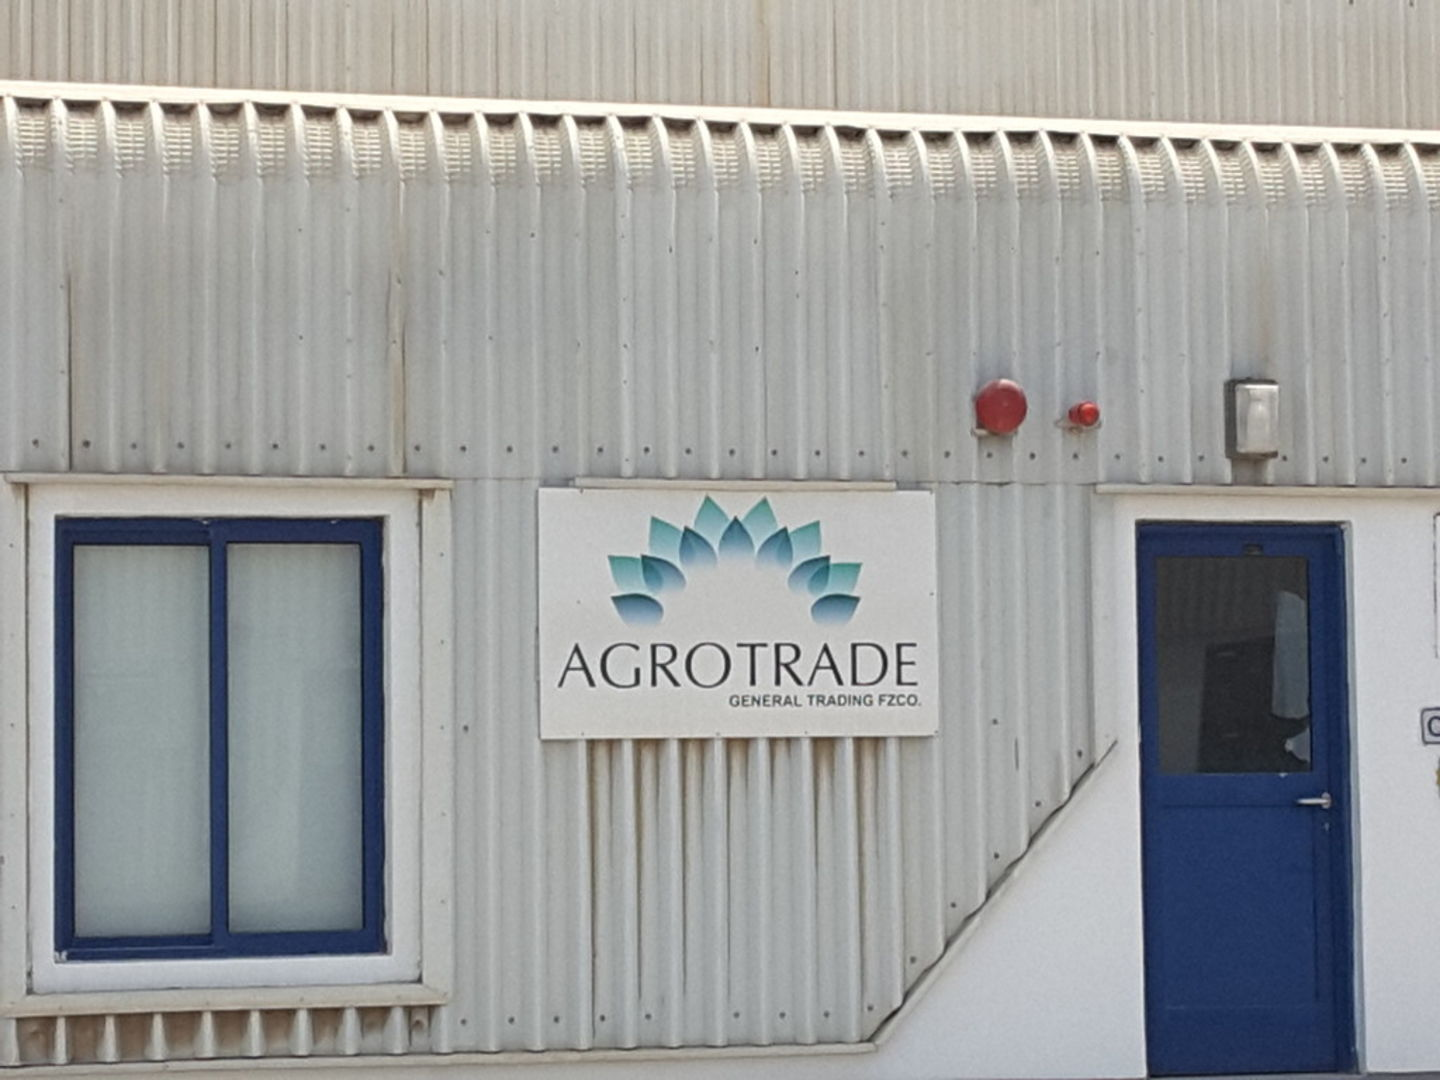 HiDubai-business-agrotrade-general-trading-fzco-b2b-services-distributors-wholesalers-jebel-ali-free-zone-mena-jebel-ali-dubai-2